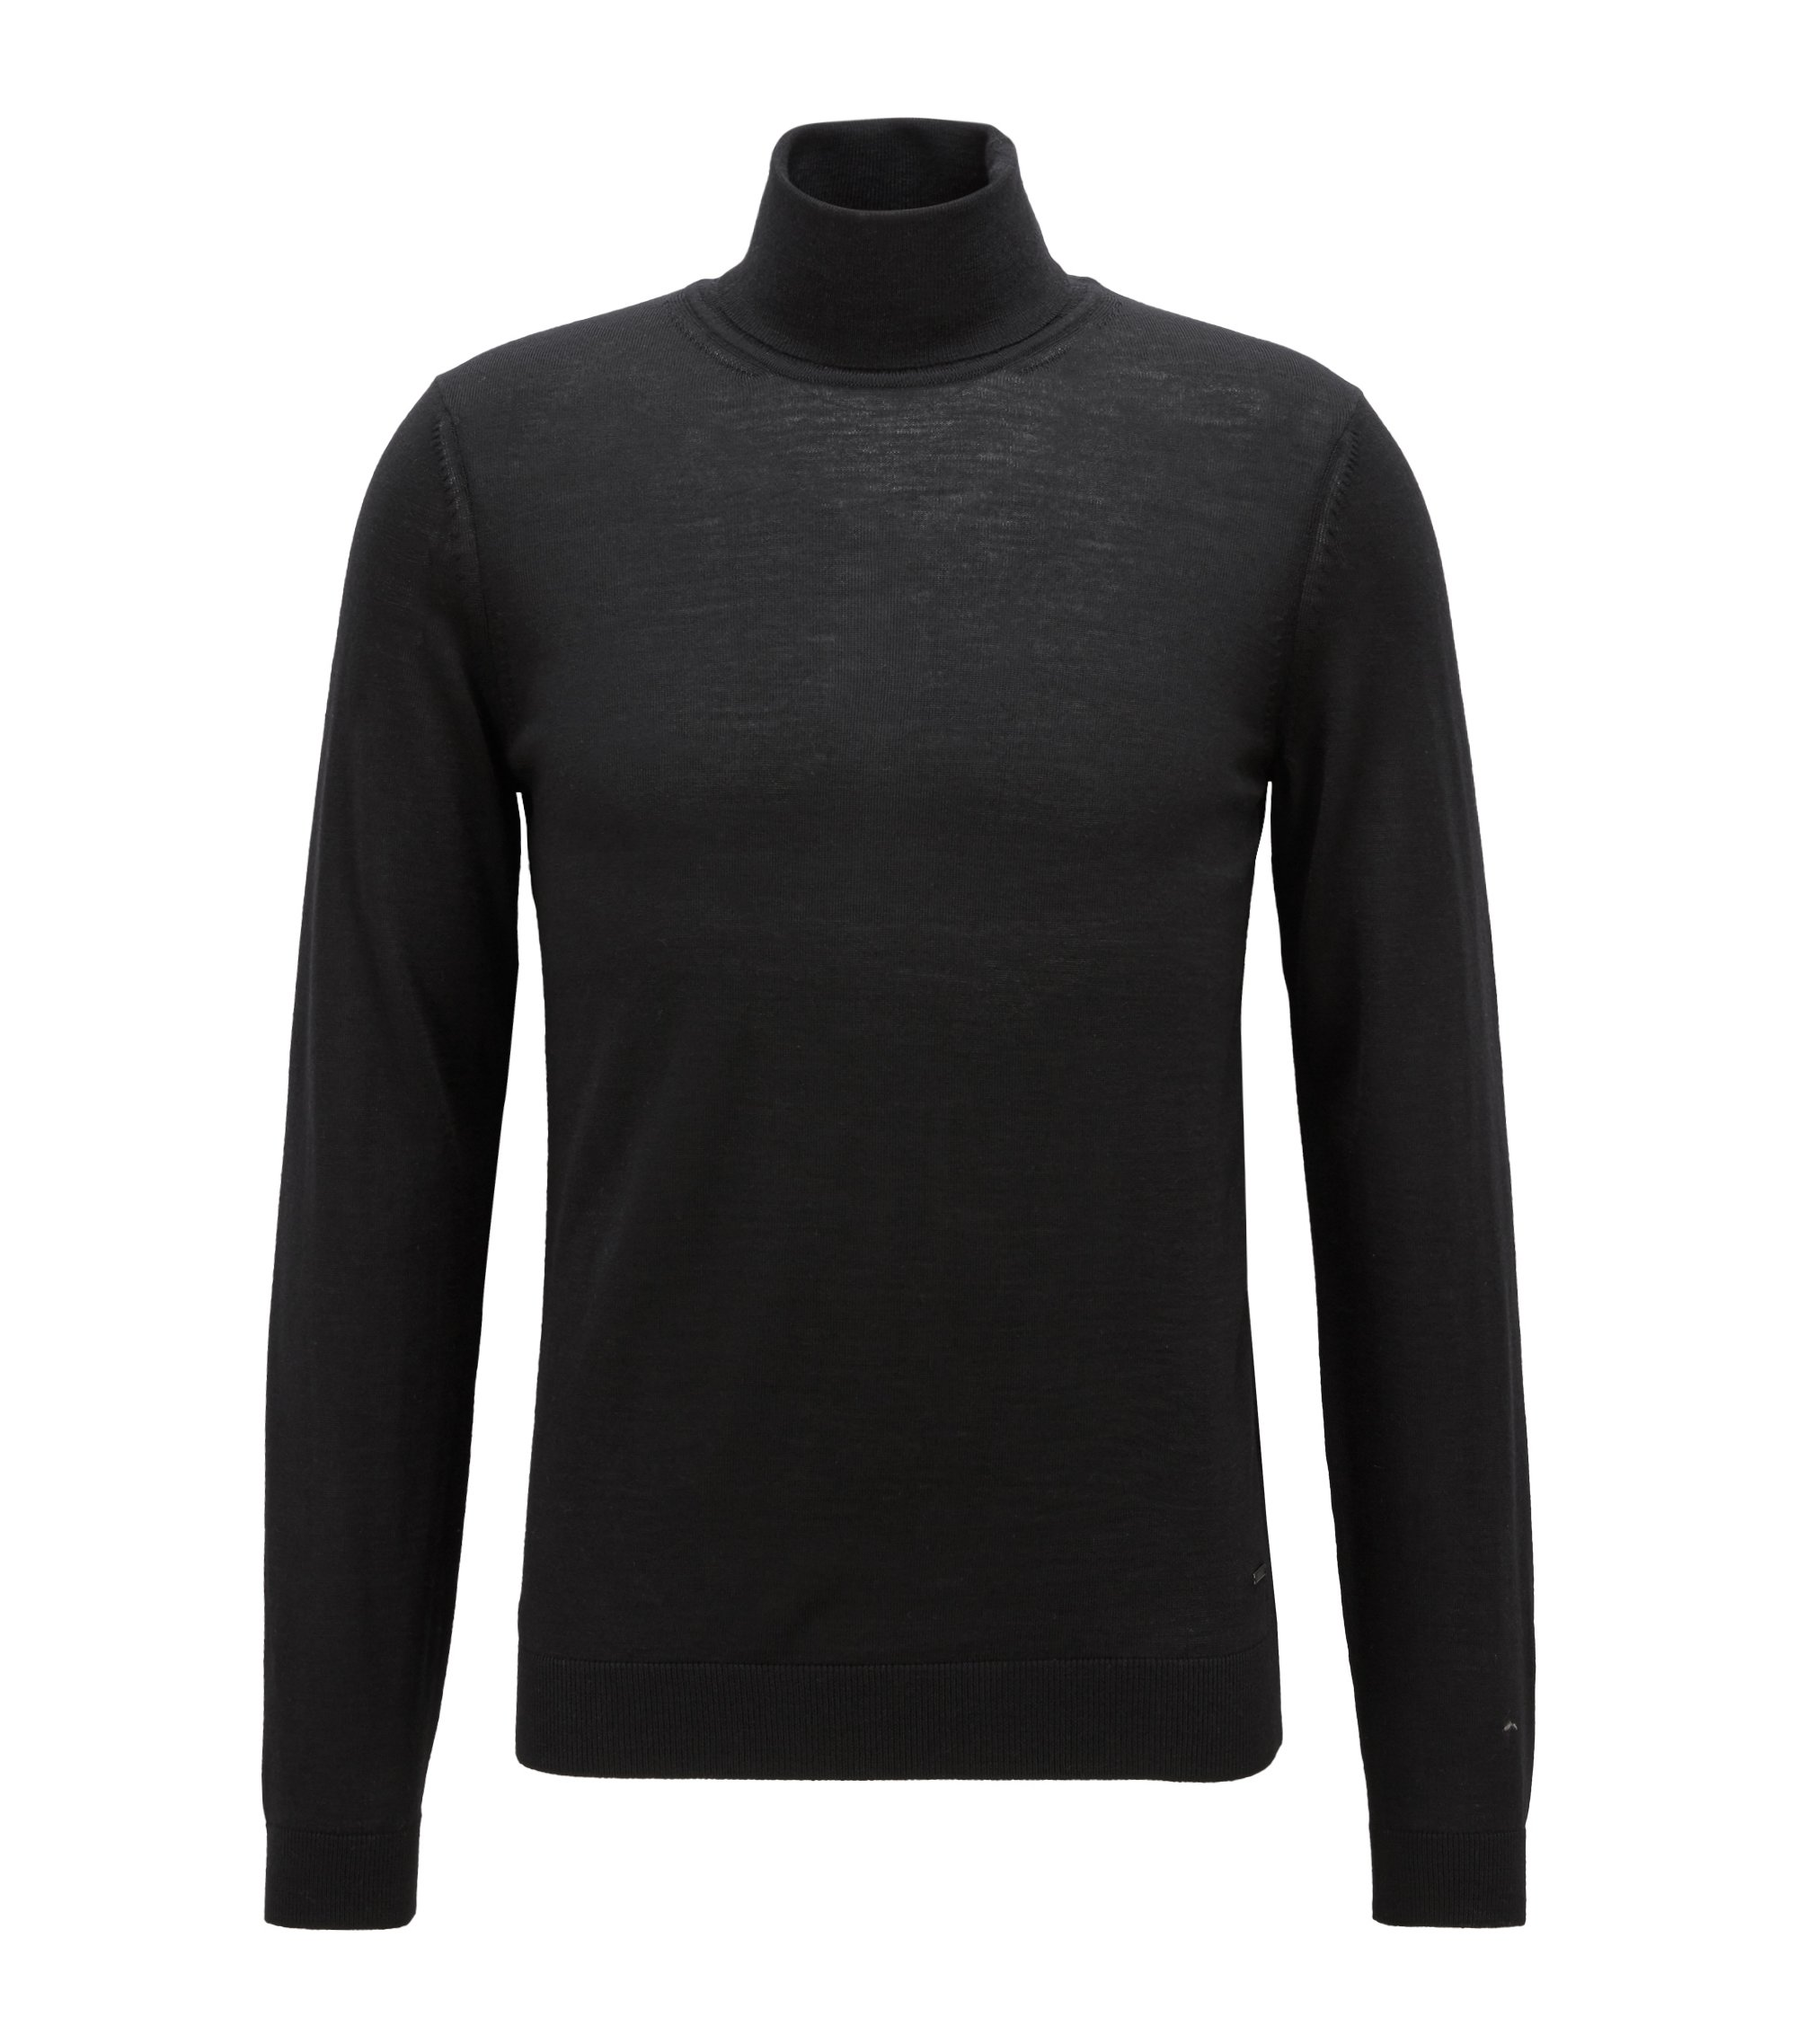 Turtleneck sweater in extra-fine Italian merino wool, Black